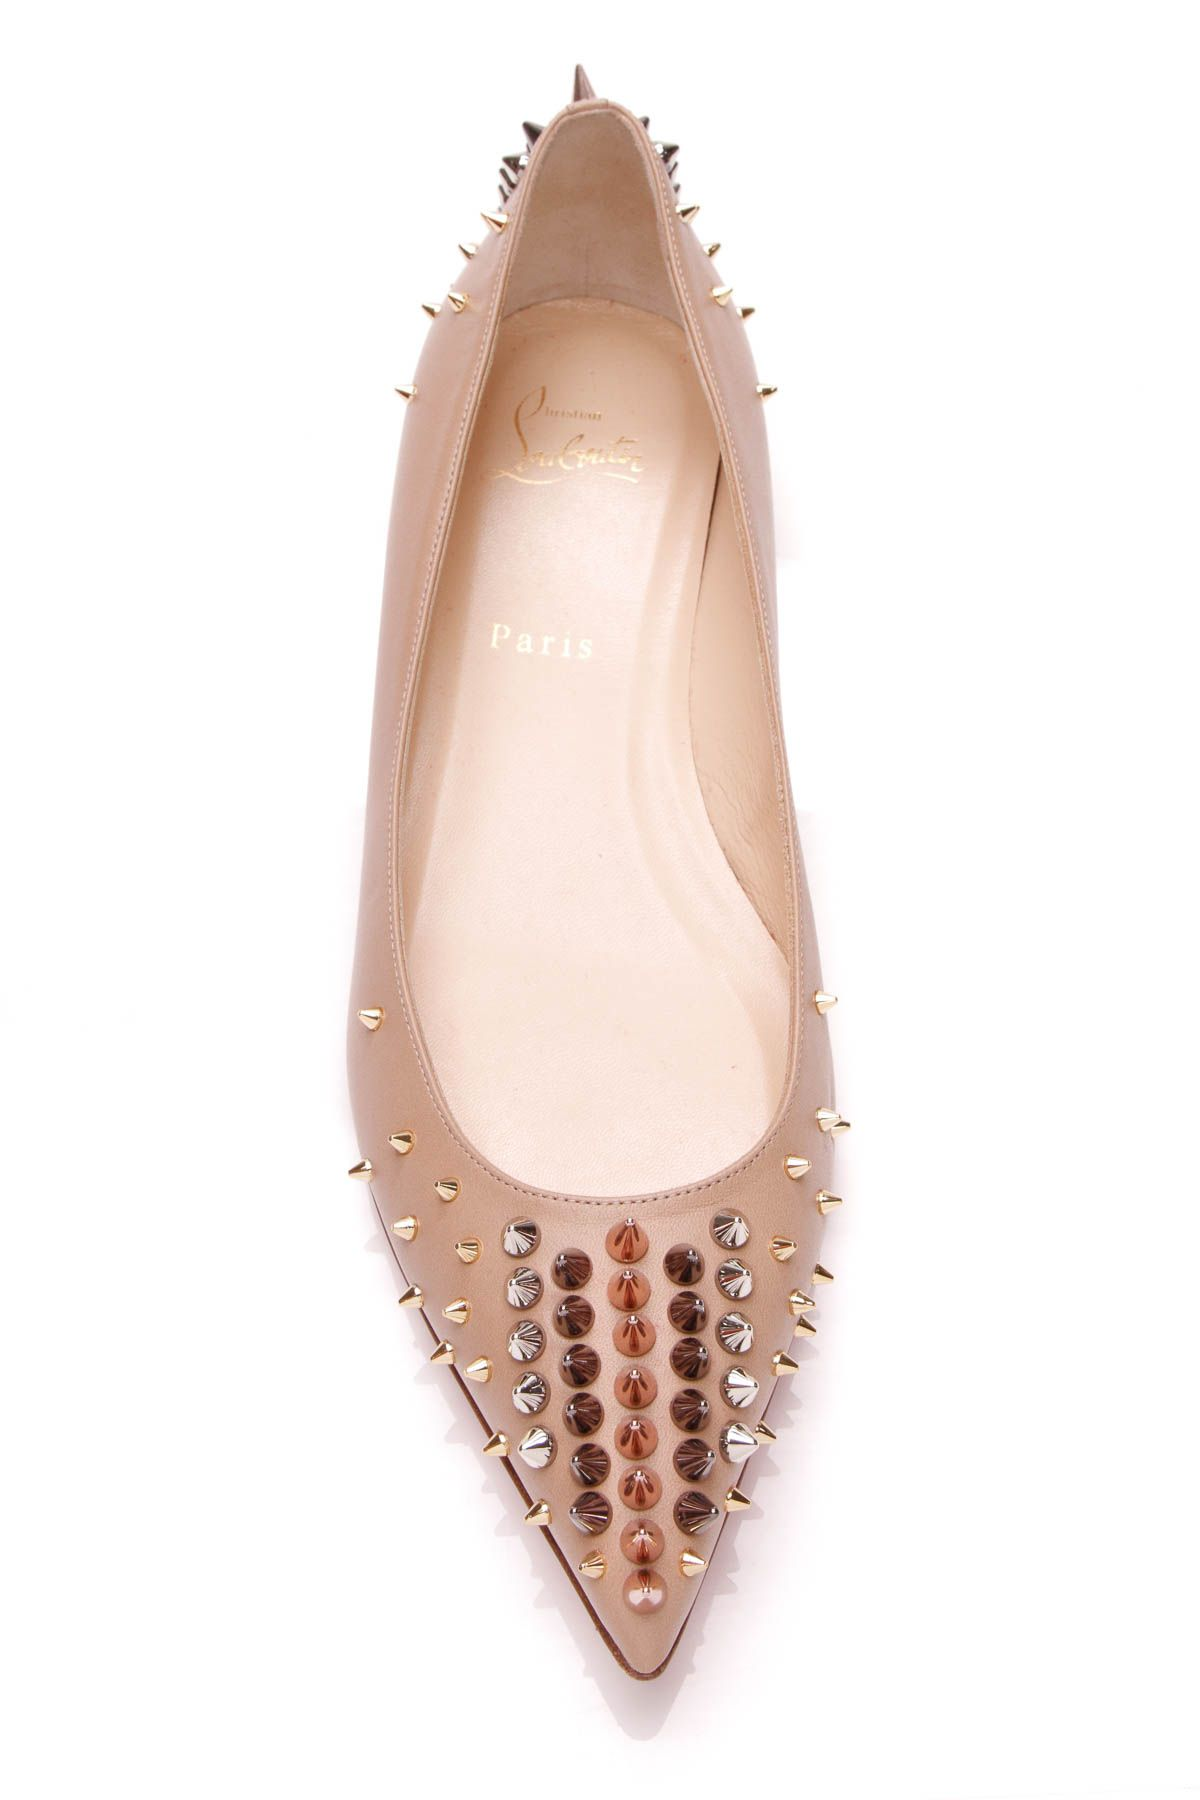 041b29aa0a1c Christian Louboutin Goldoflat Spiked Ballet Flats Fly Shoes